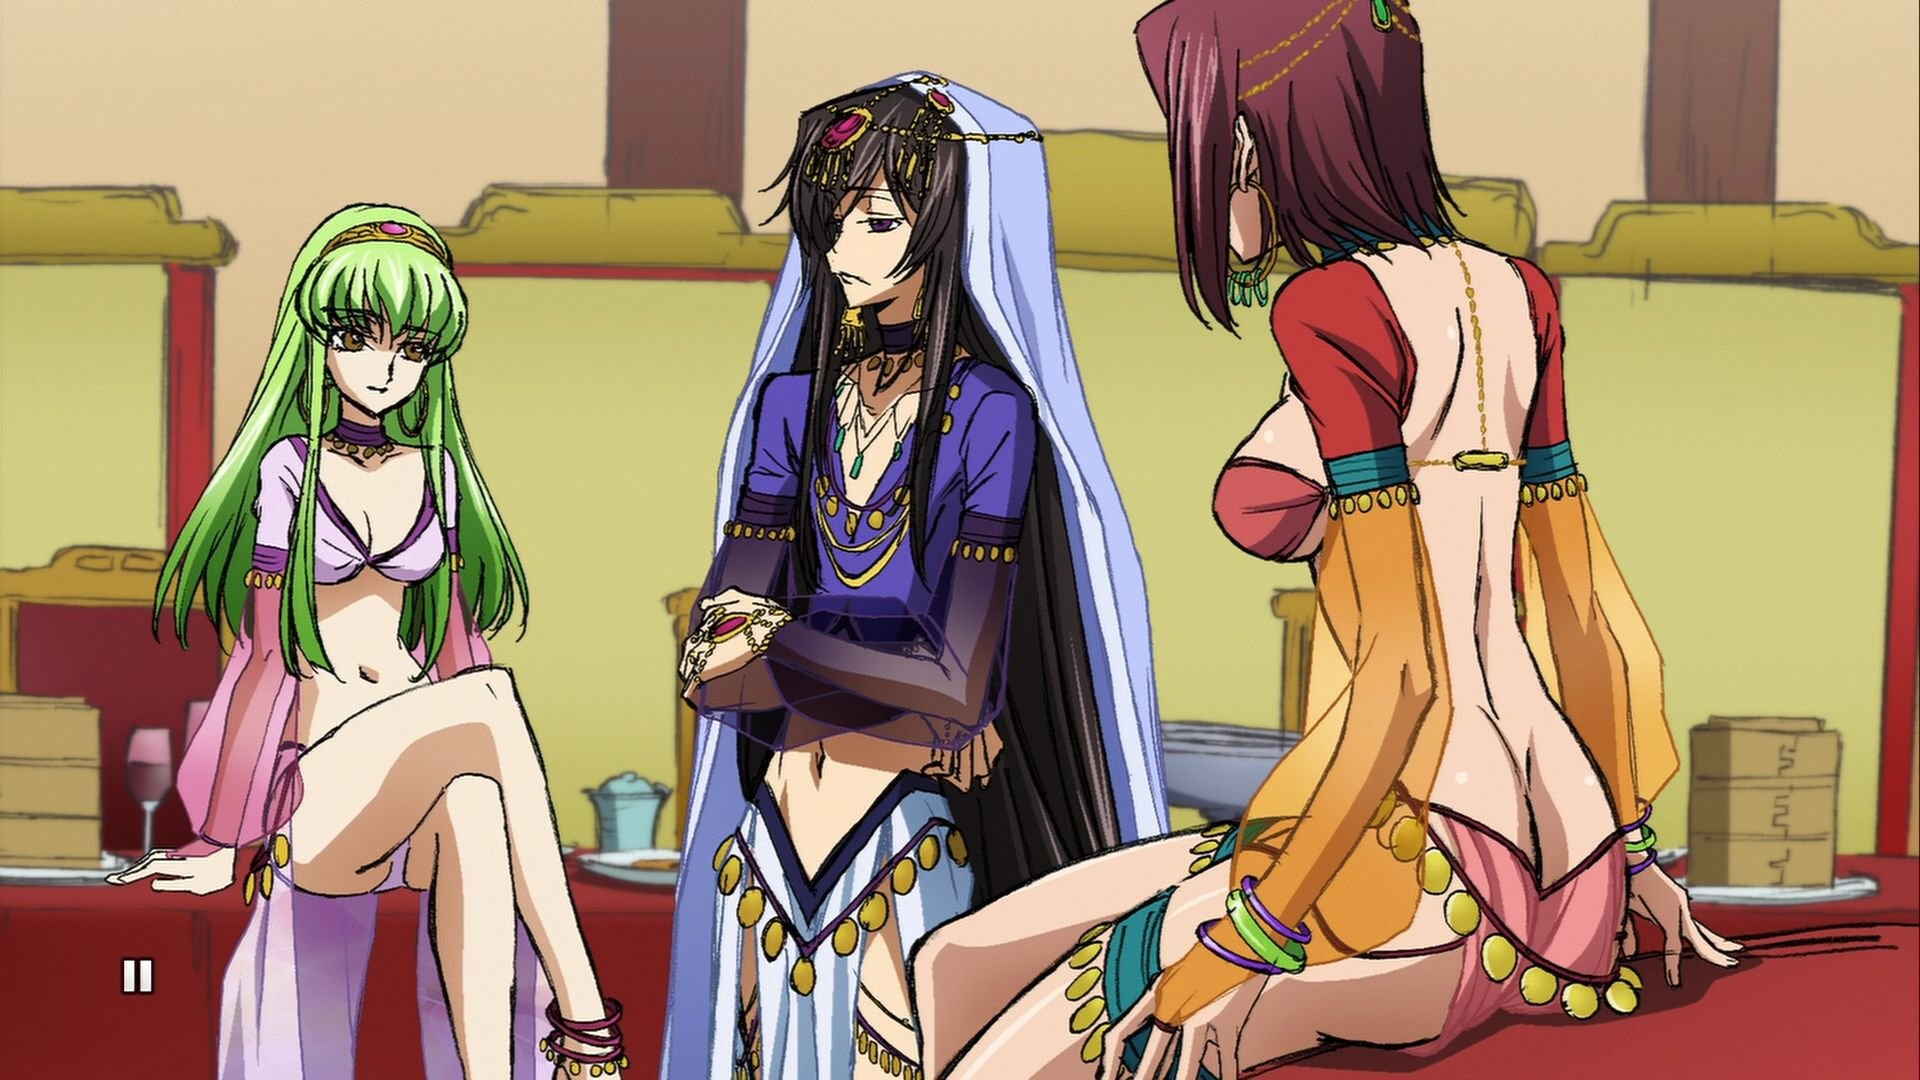 Download full hd 1920x1080 Code Geass PC wallpaper ID:44693 for free